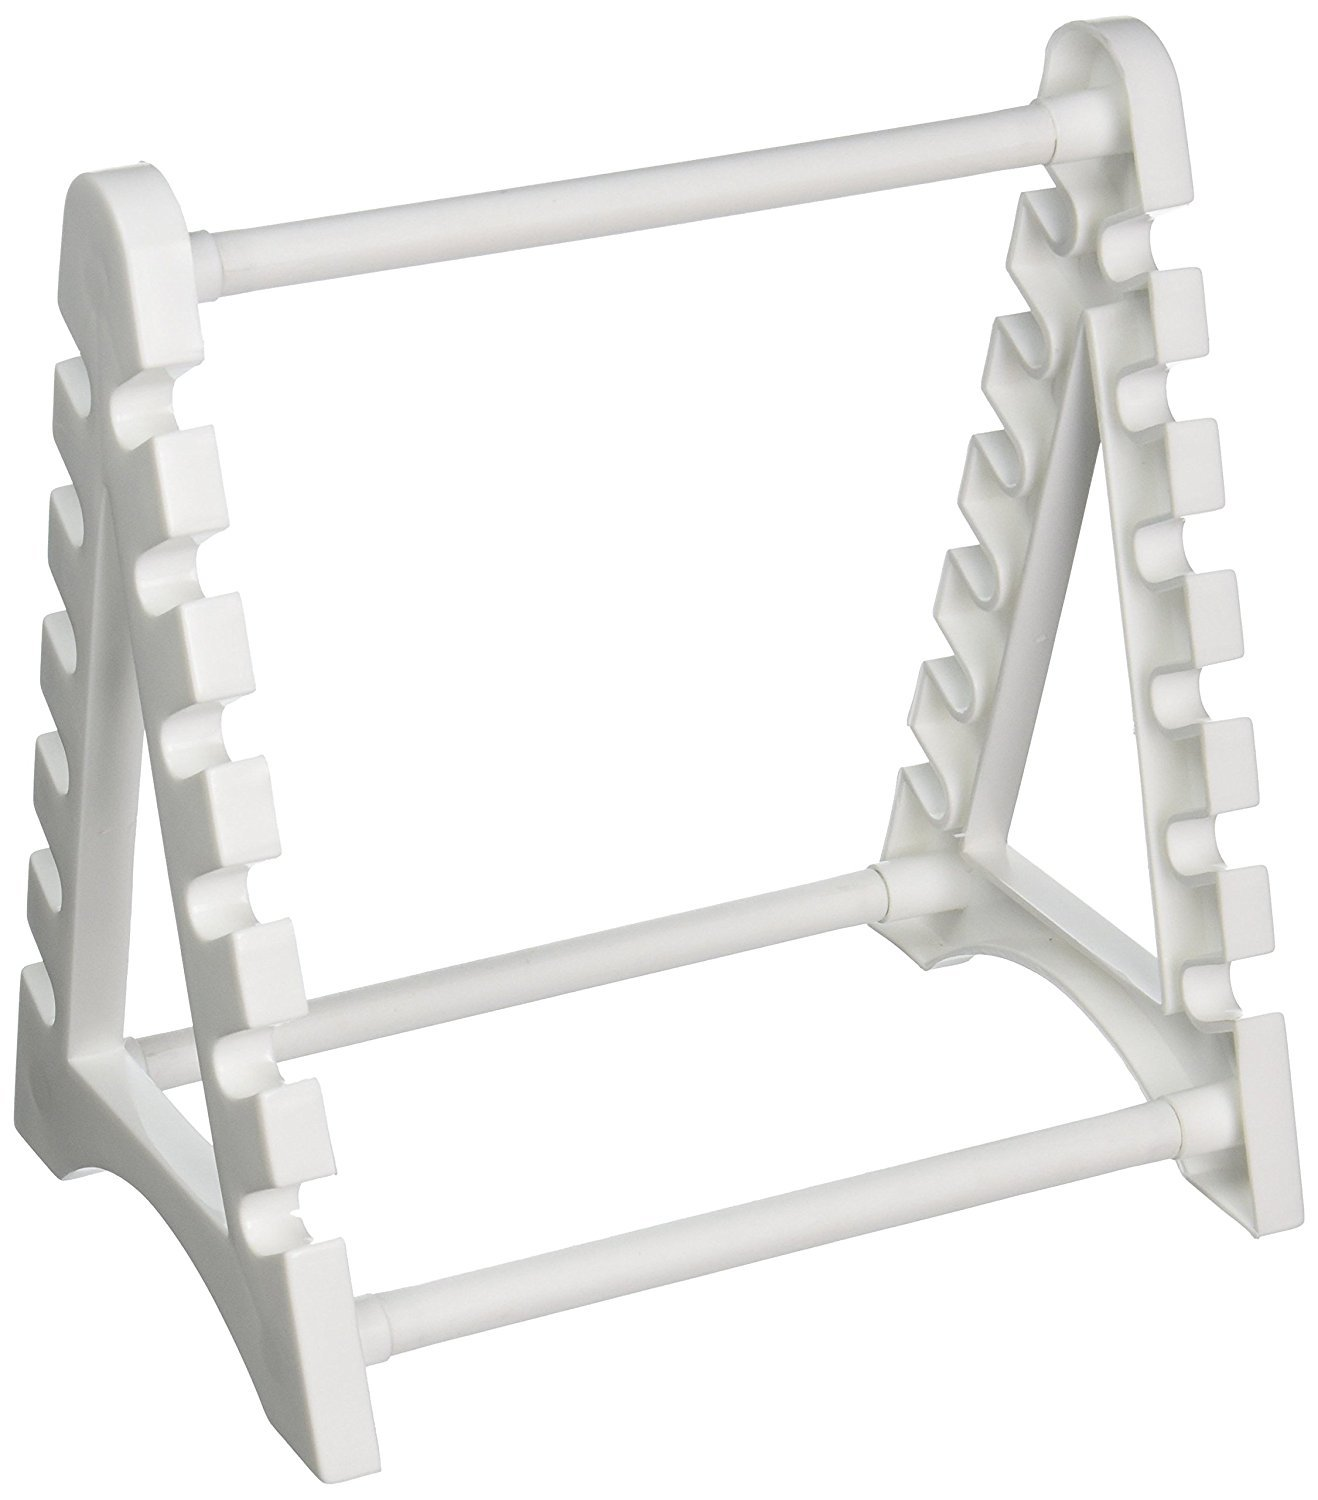 Horizontal Pipette Stand and Rack; Holds 12 Pipettes